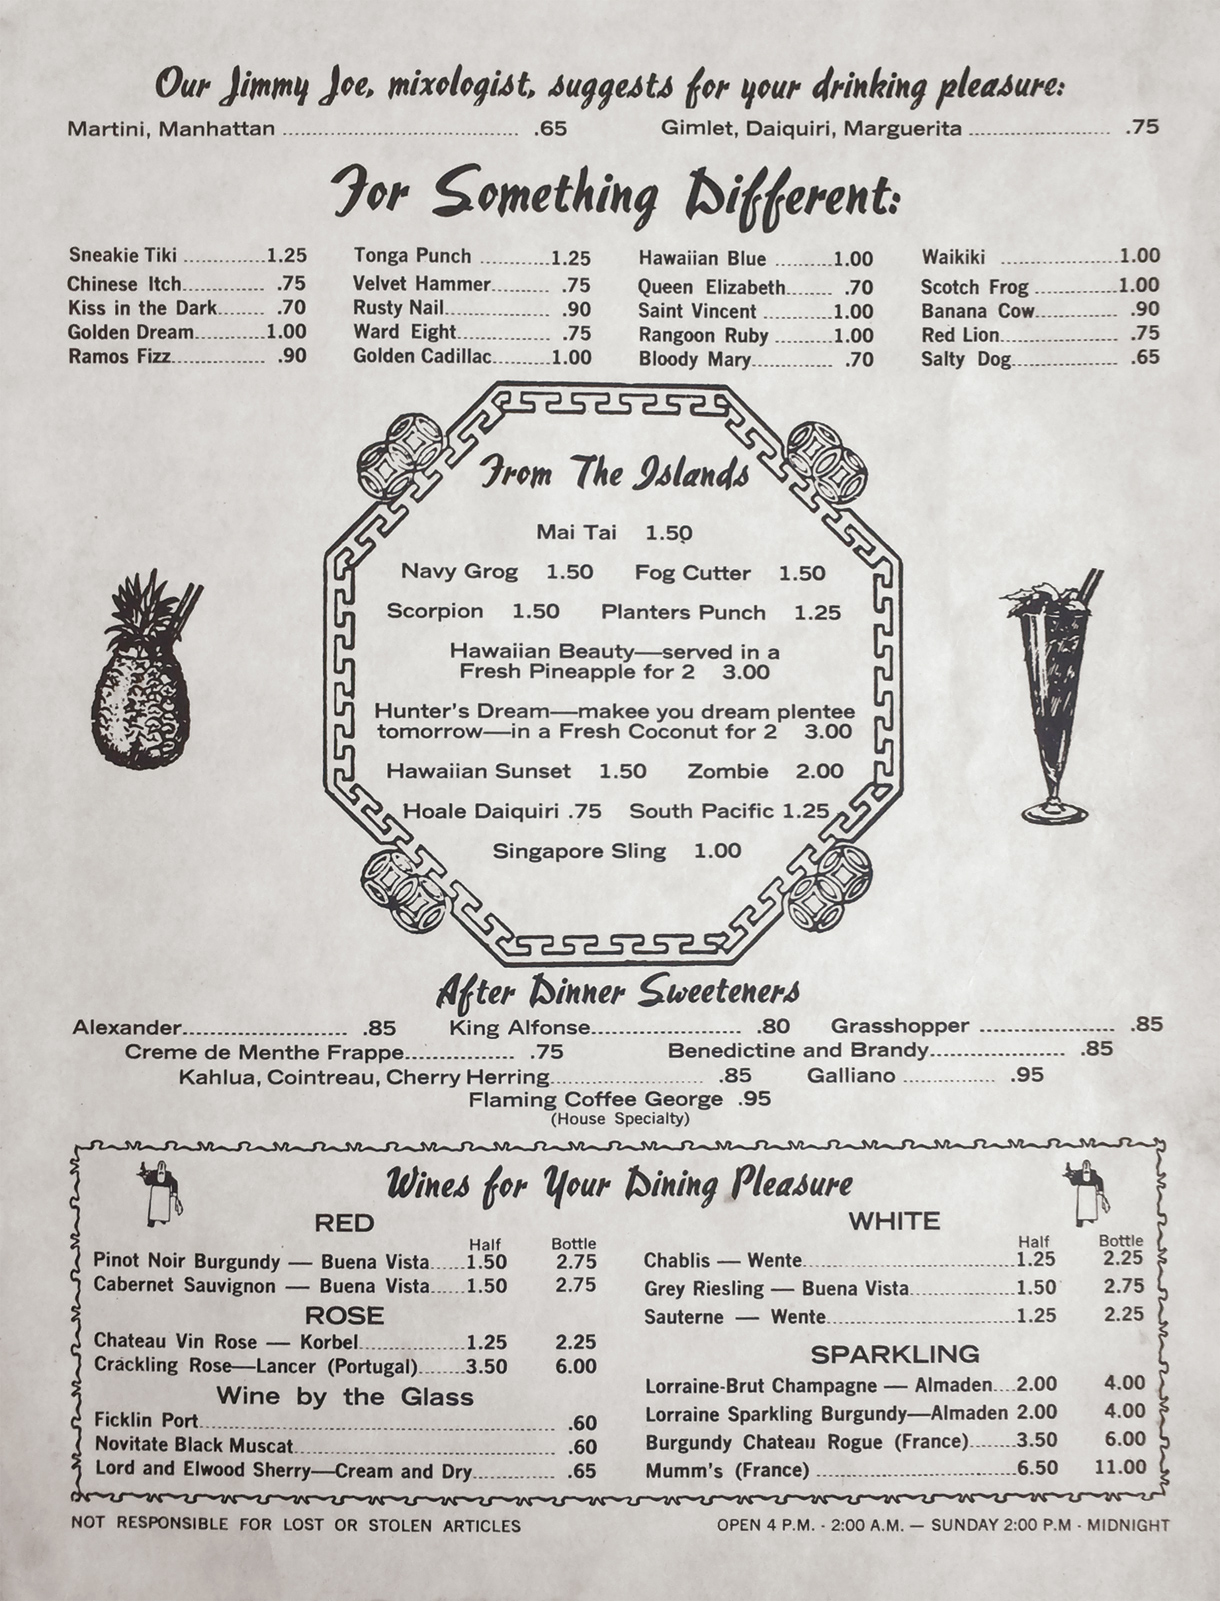 George Joes drink menu